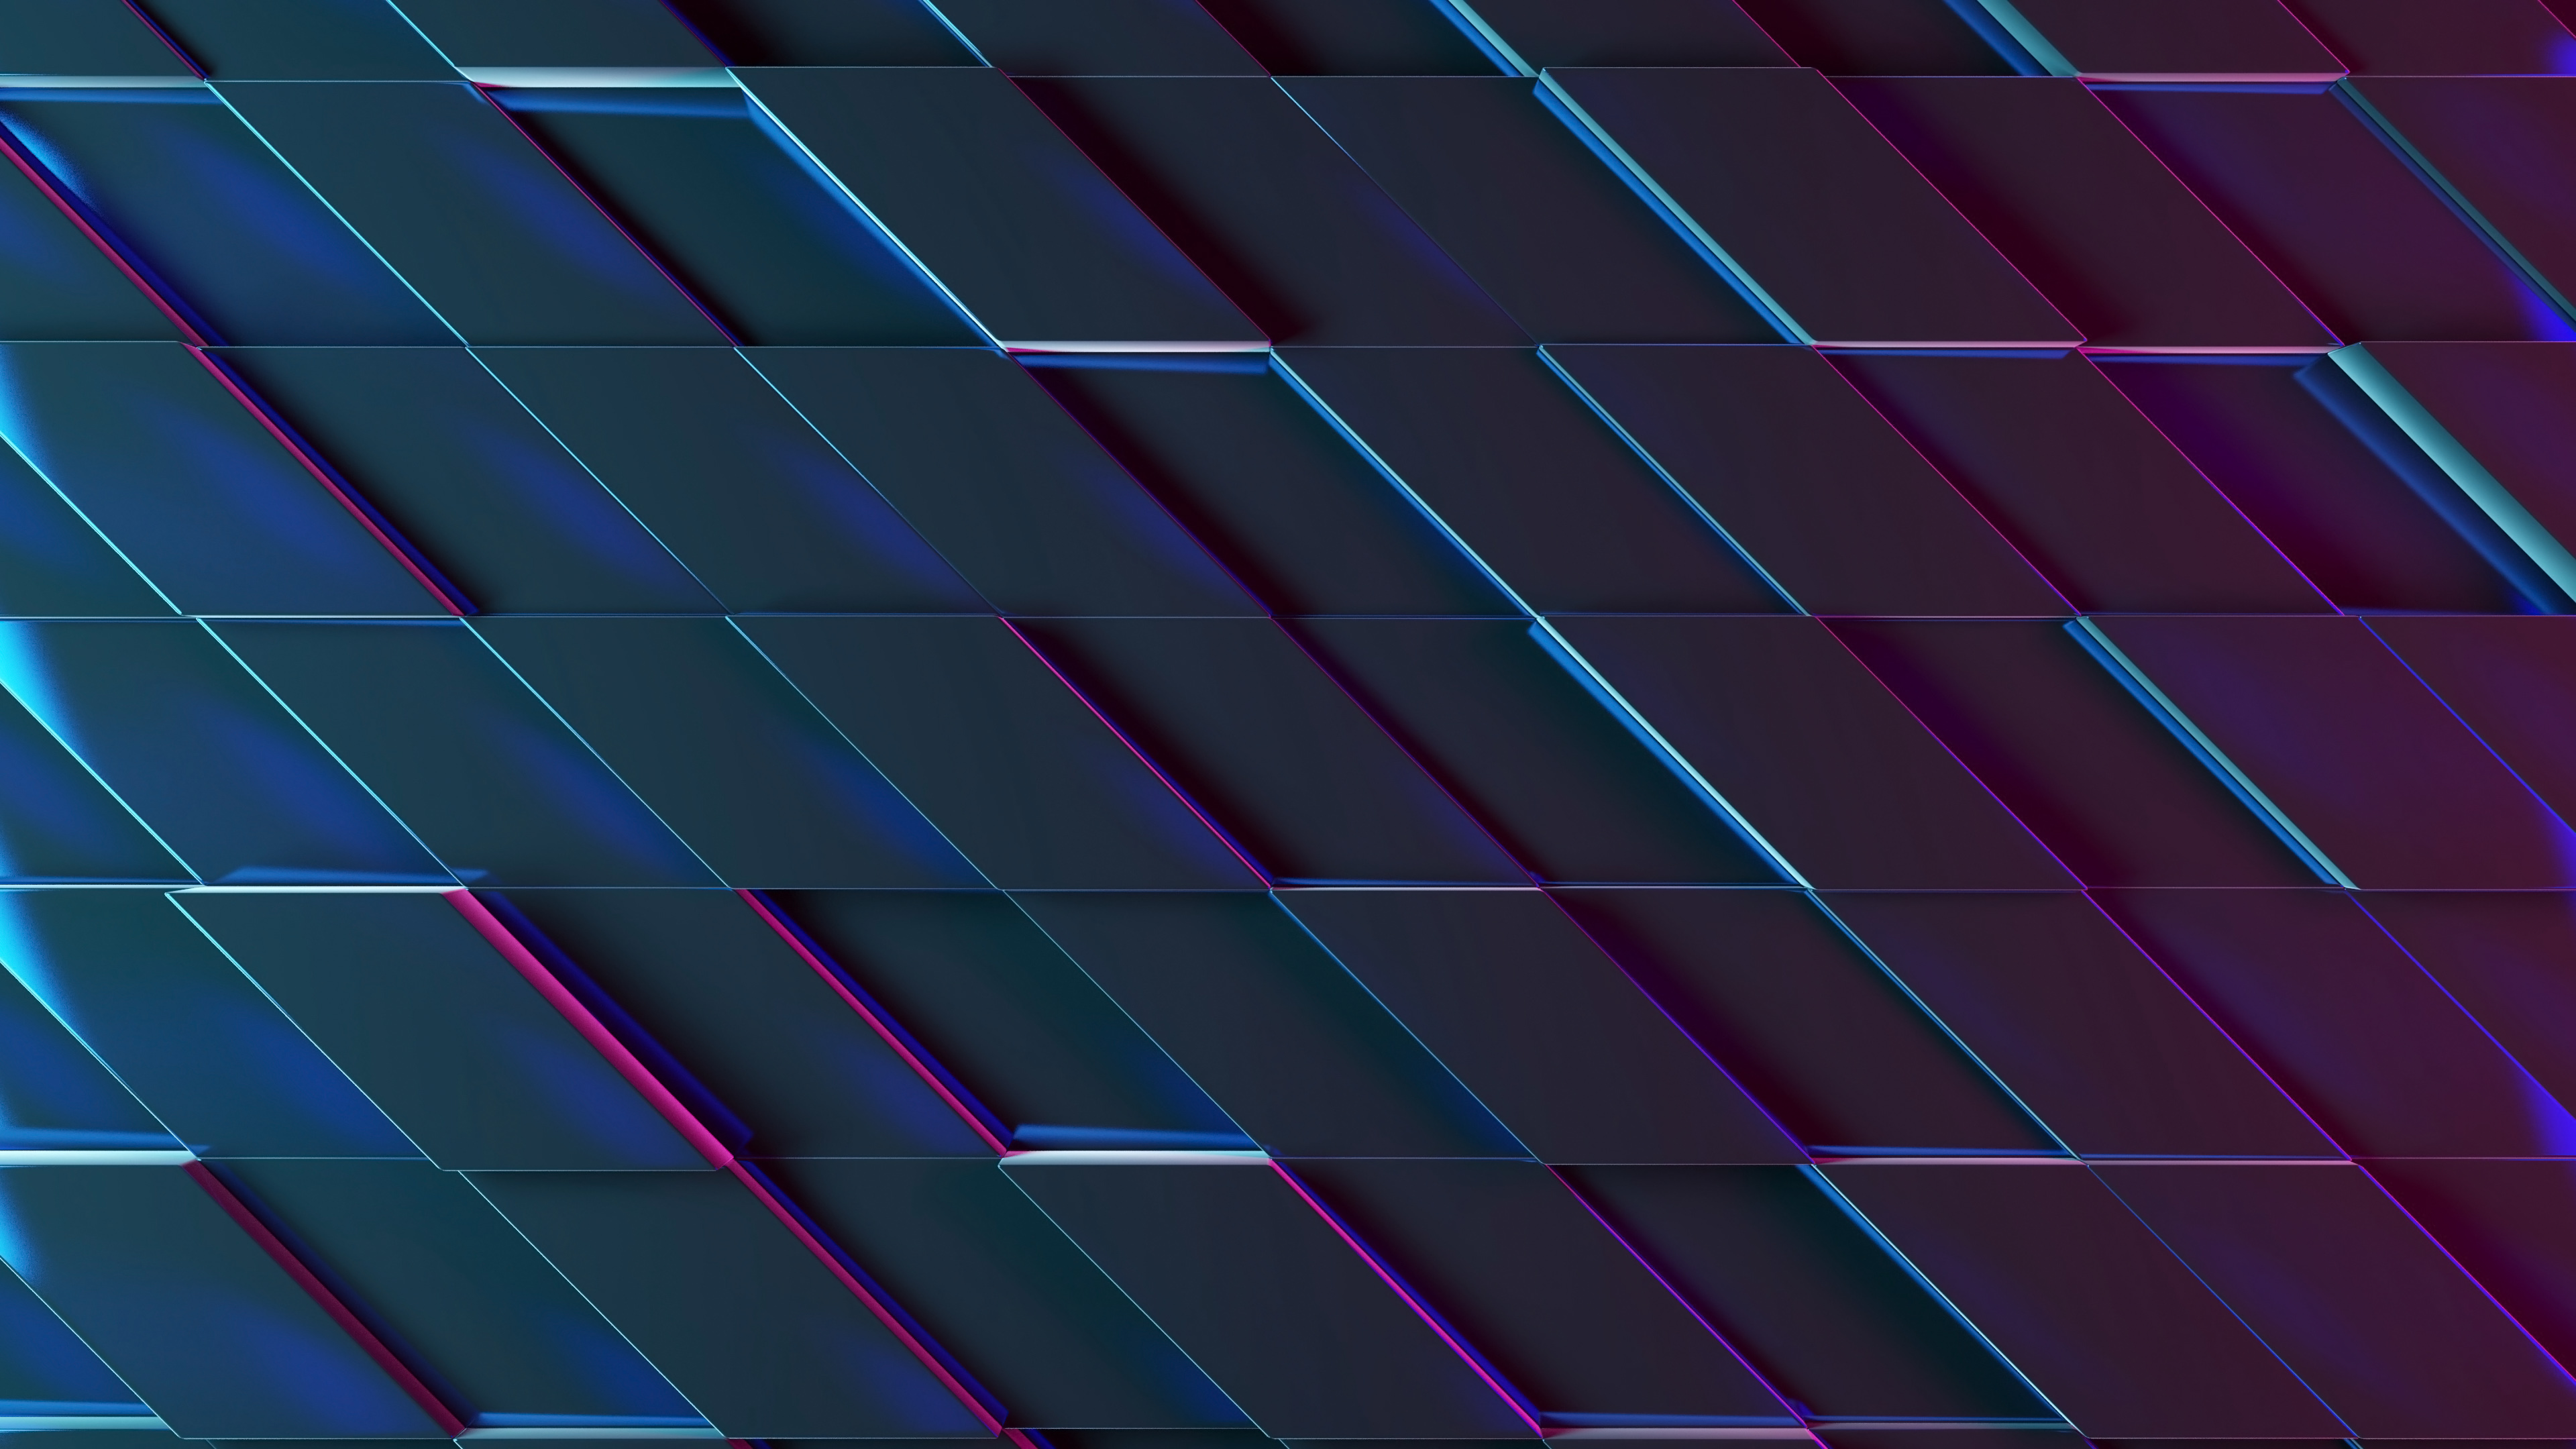 Neon Wallpaper 4k Posted By Ethan Tremblay